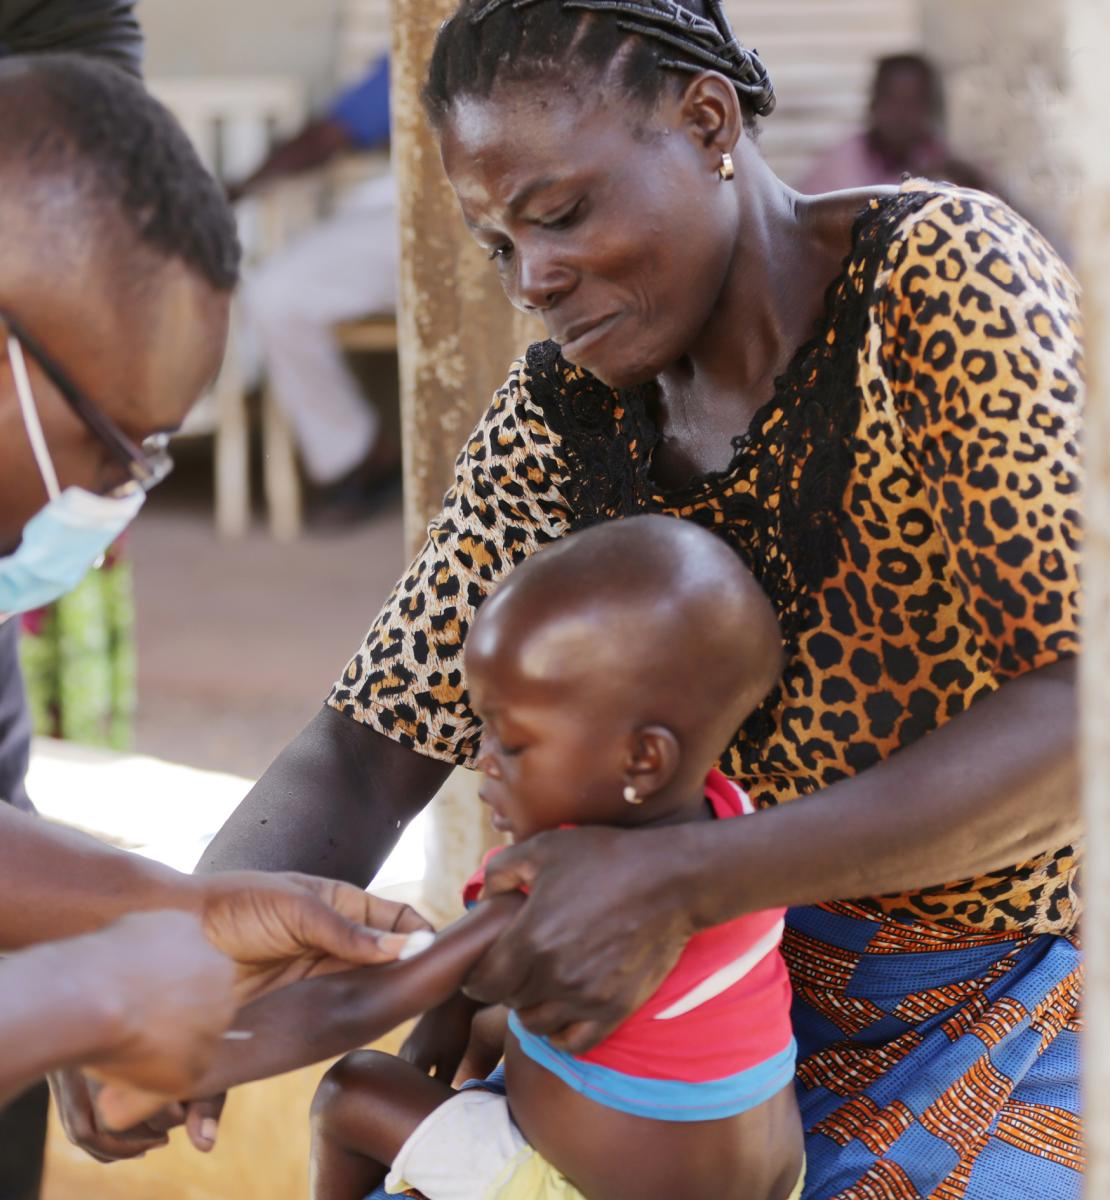 A child, held by a woman, receives an injection from a man in a yellow shirt.